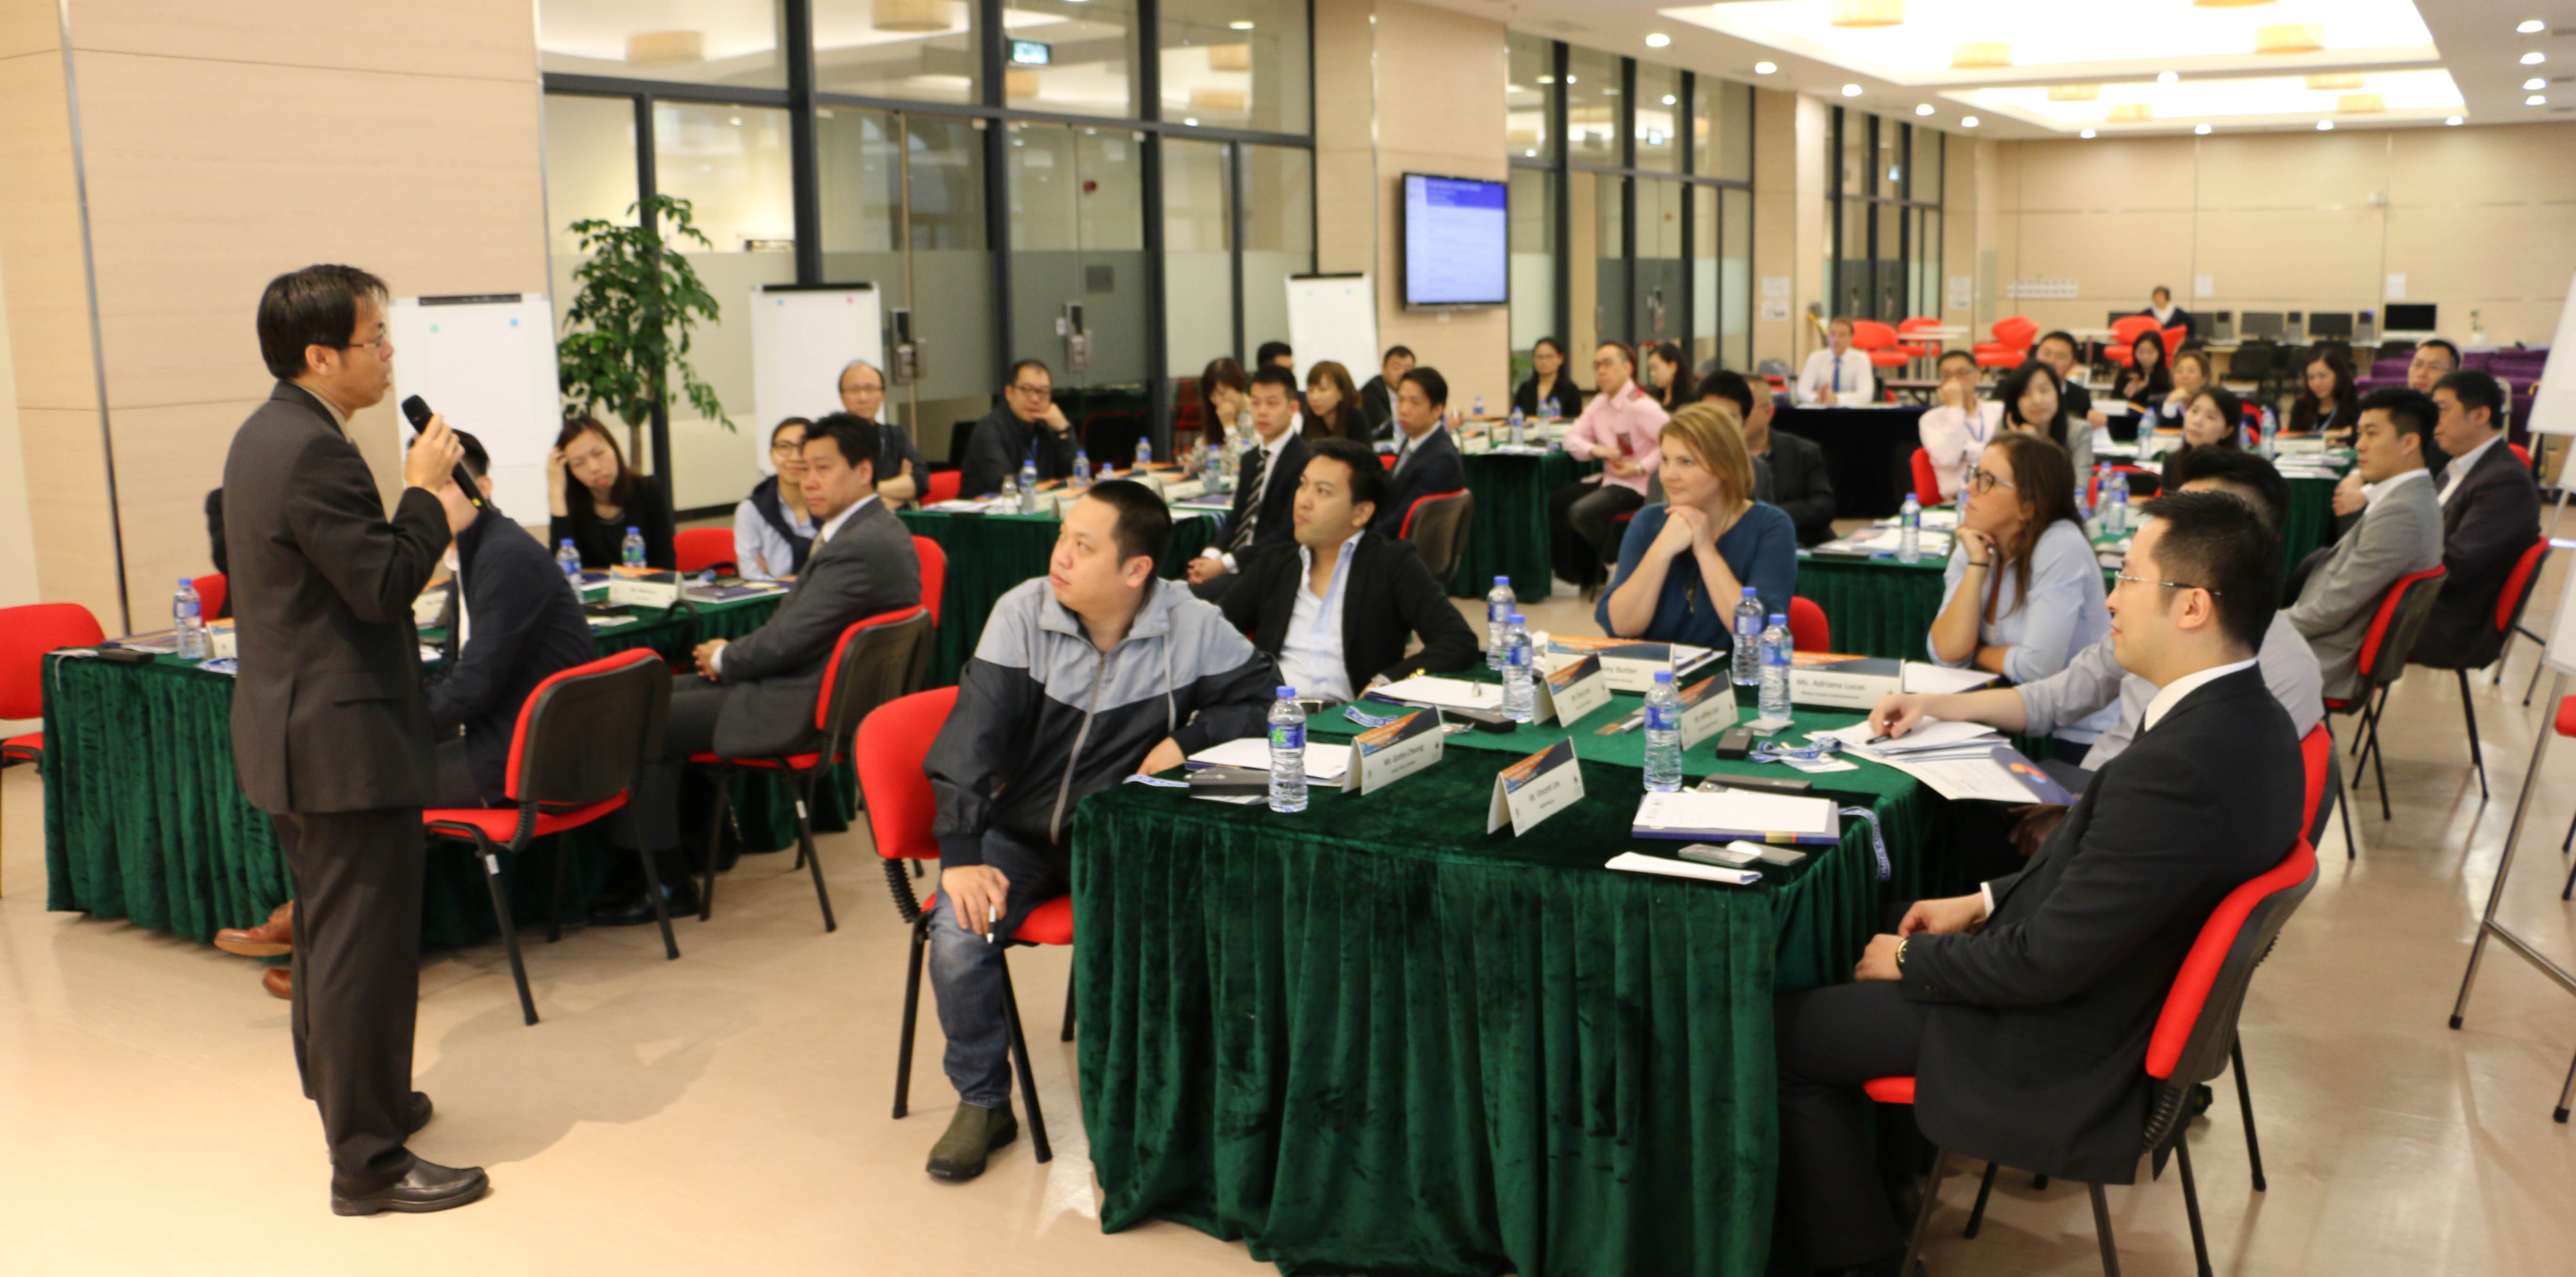 UM's Hospitality Leadership Programme aims to train internationally competitive professionals